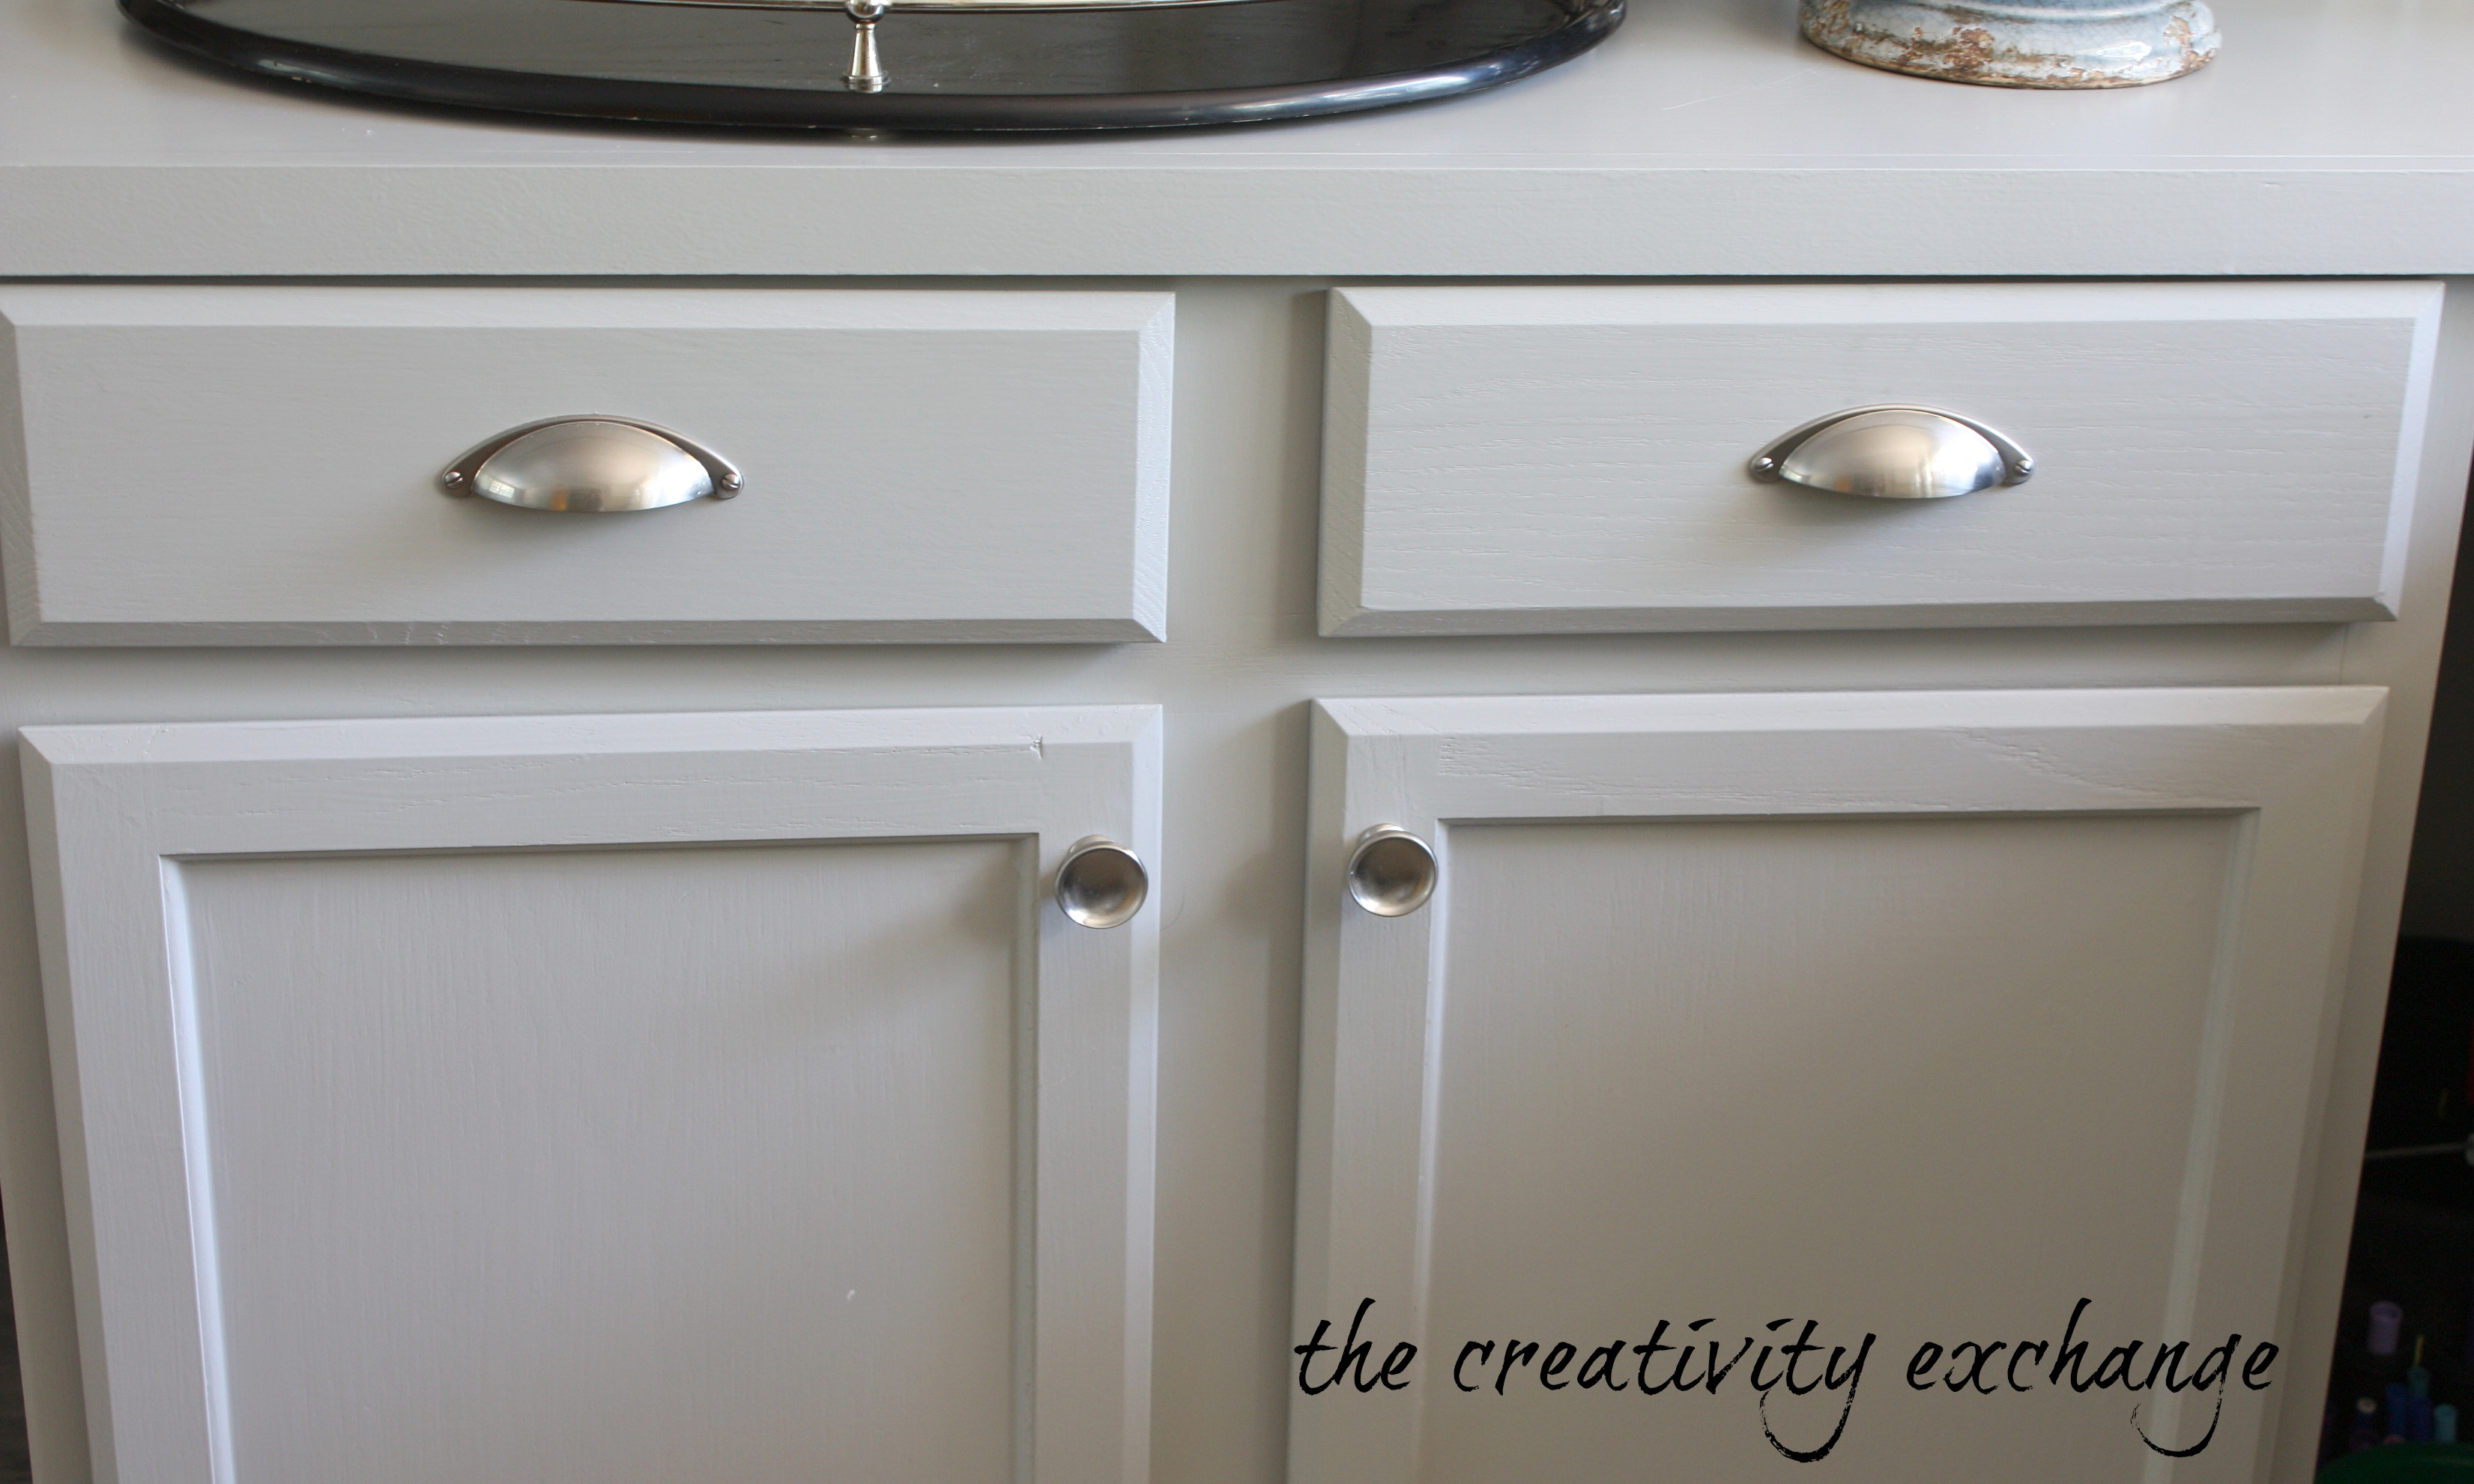 Office craft room revamp progress report for Brushed nickel hardware for kitchen cabinets